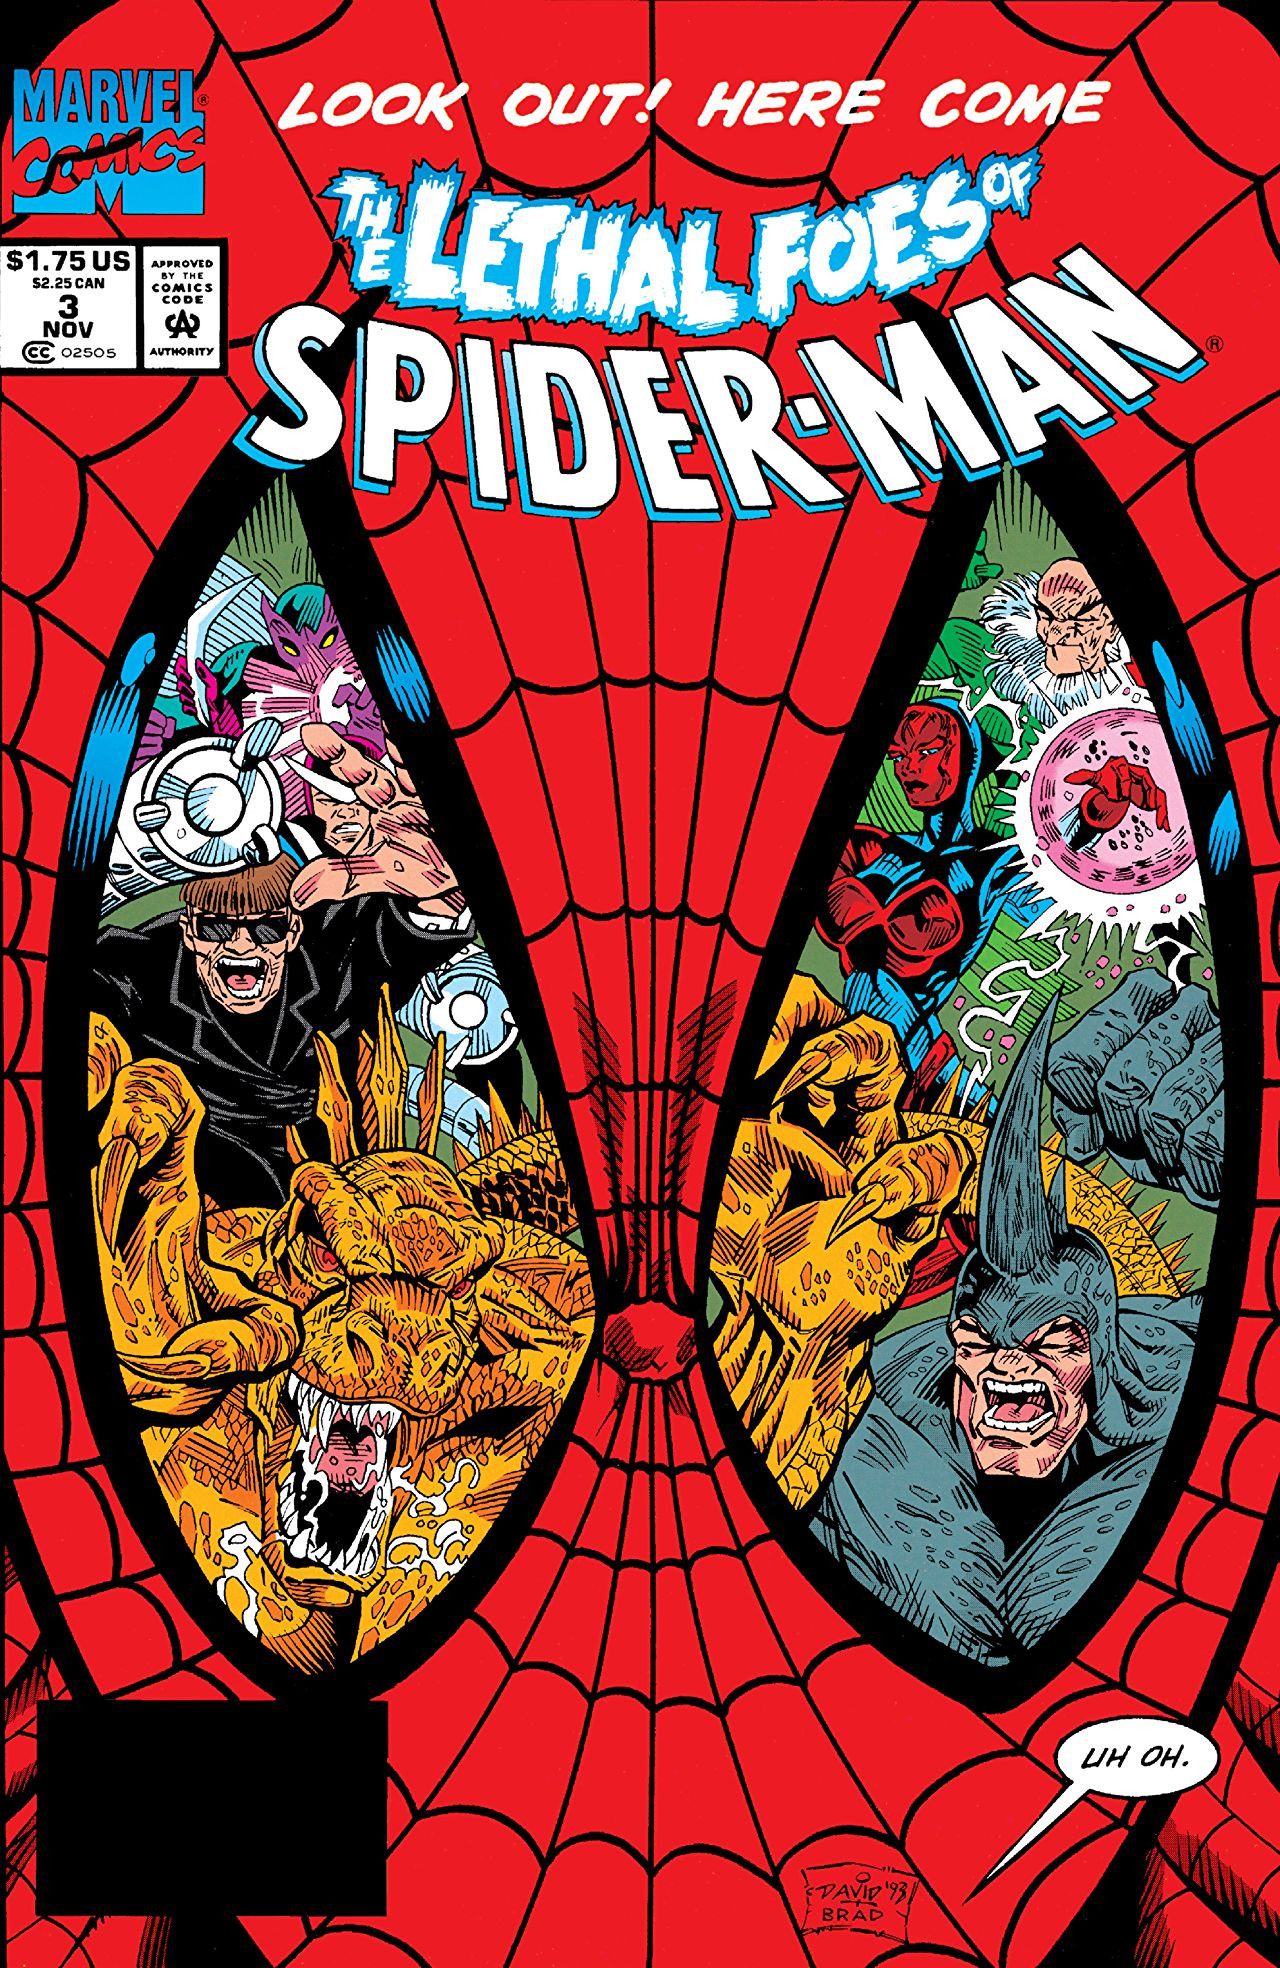 Lethal Foes of Spider-Man Vol 1 3.jpg